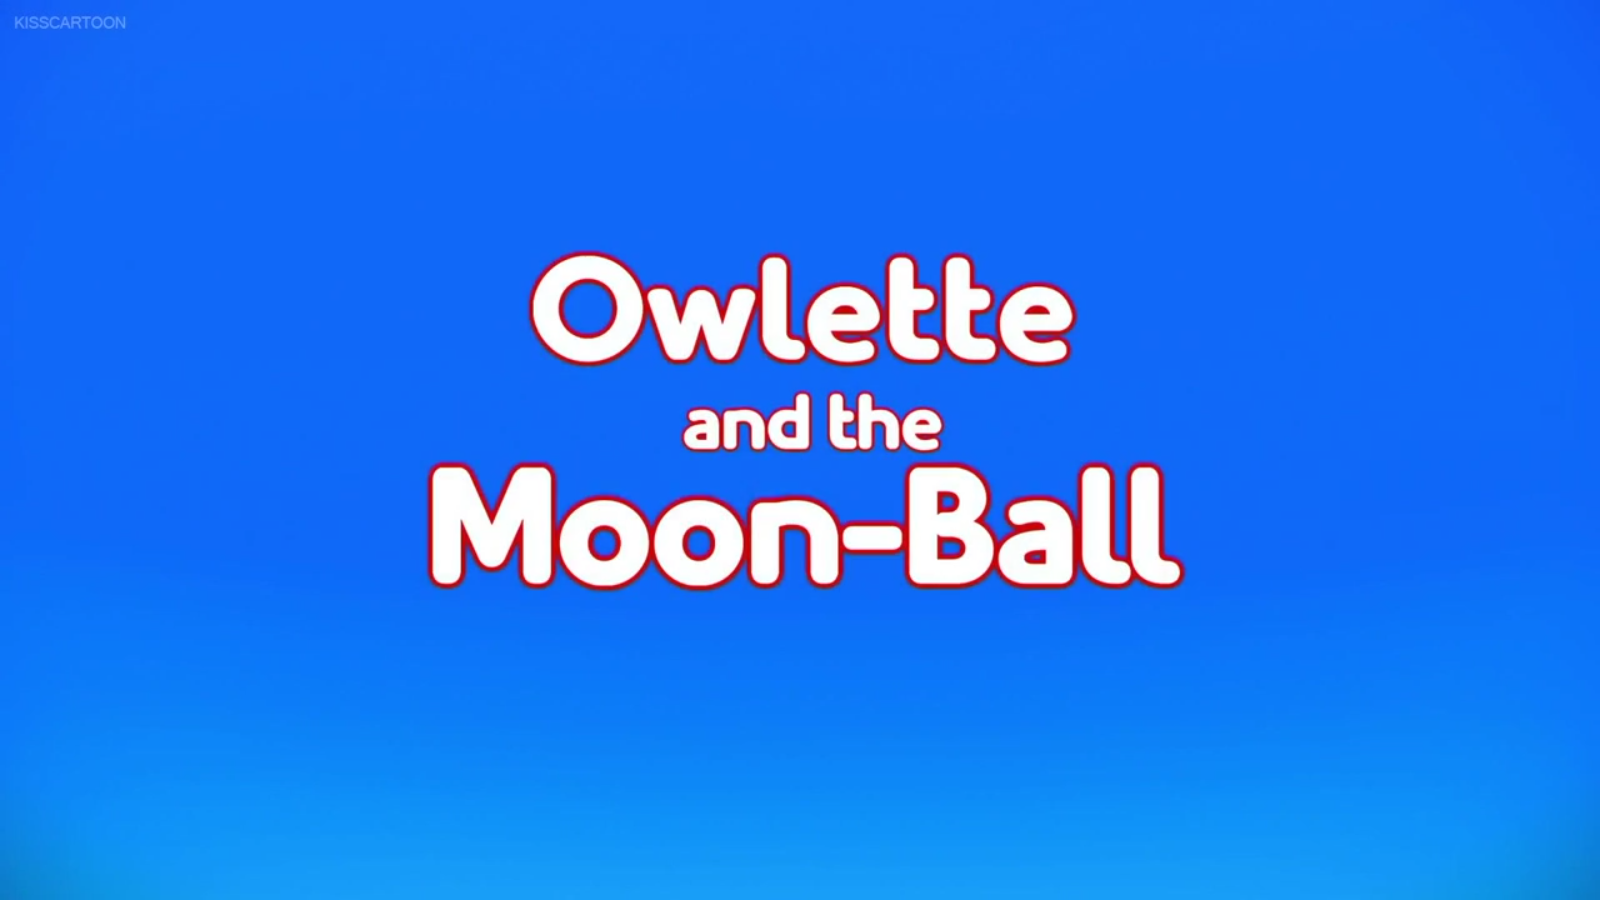 owlette and the moon